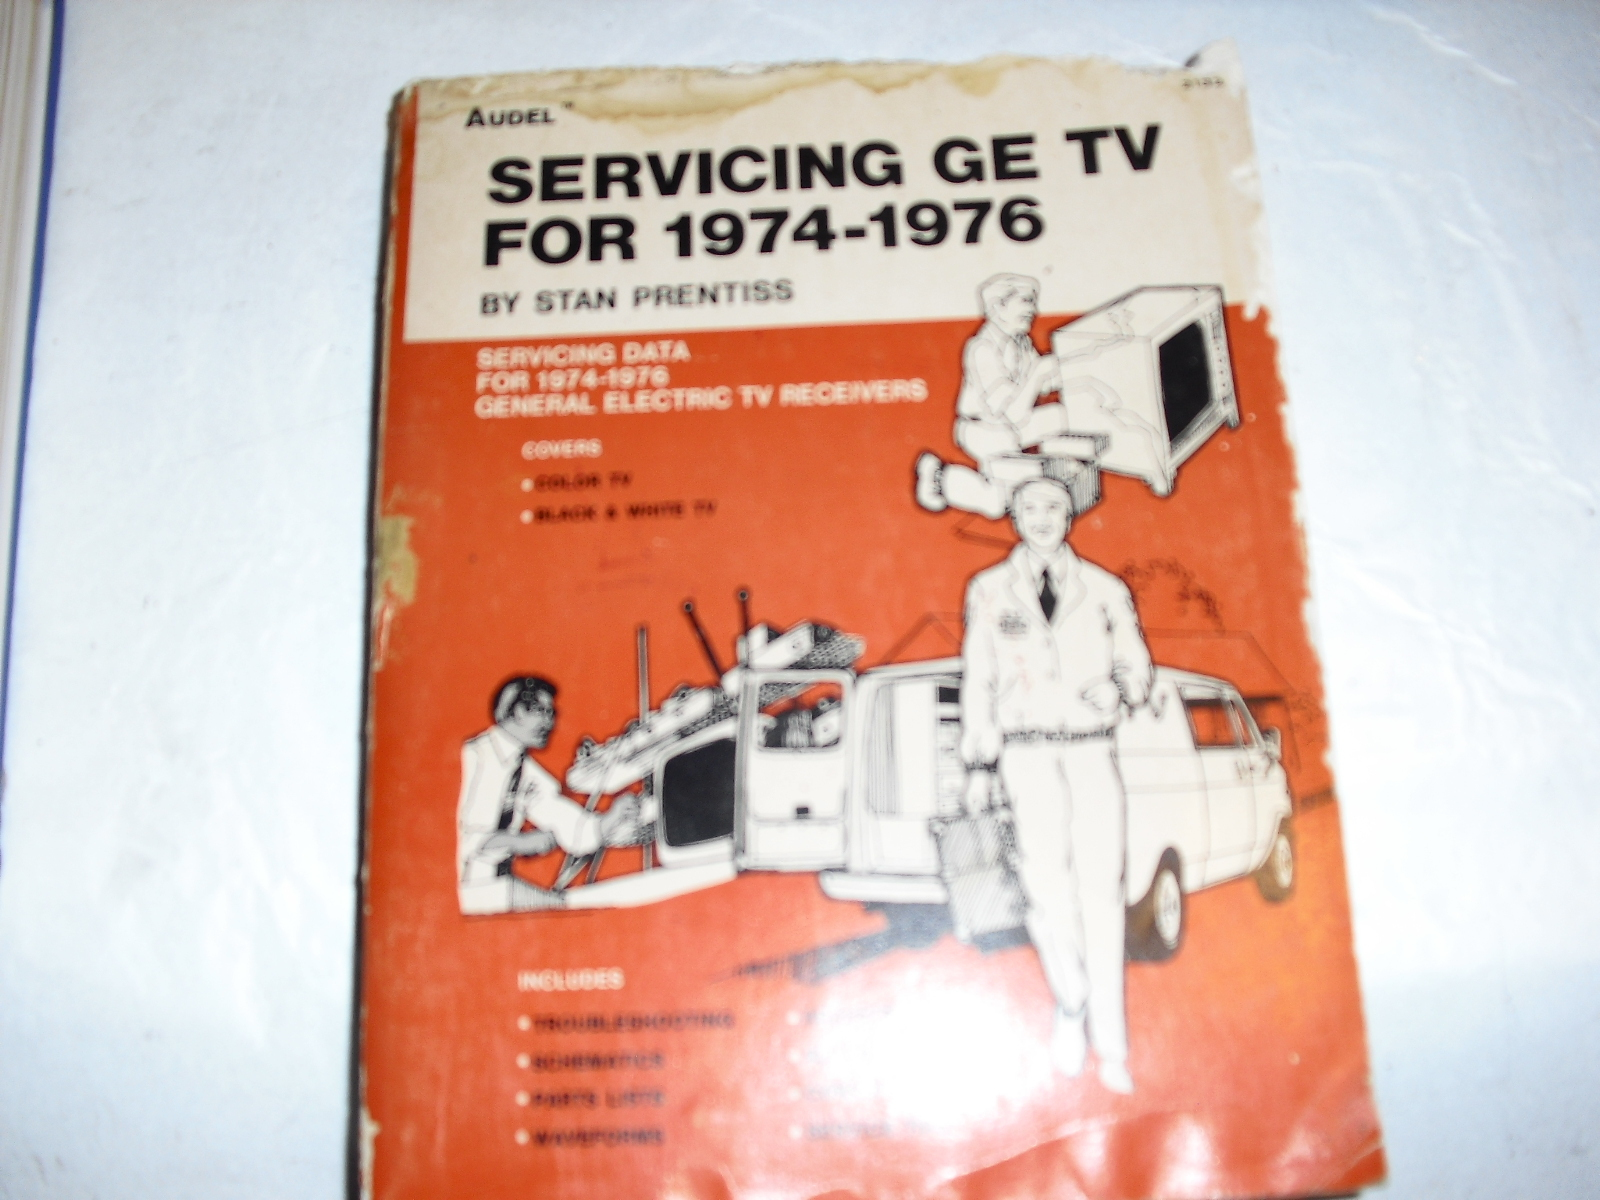 servicing  ge  tv  for  1974-1976